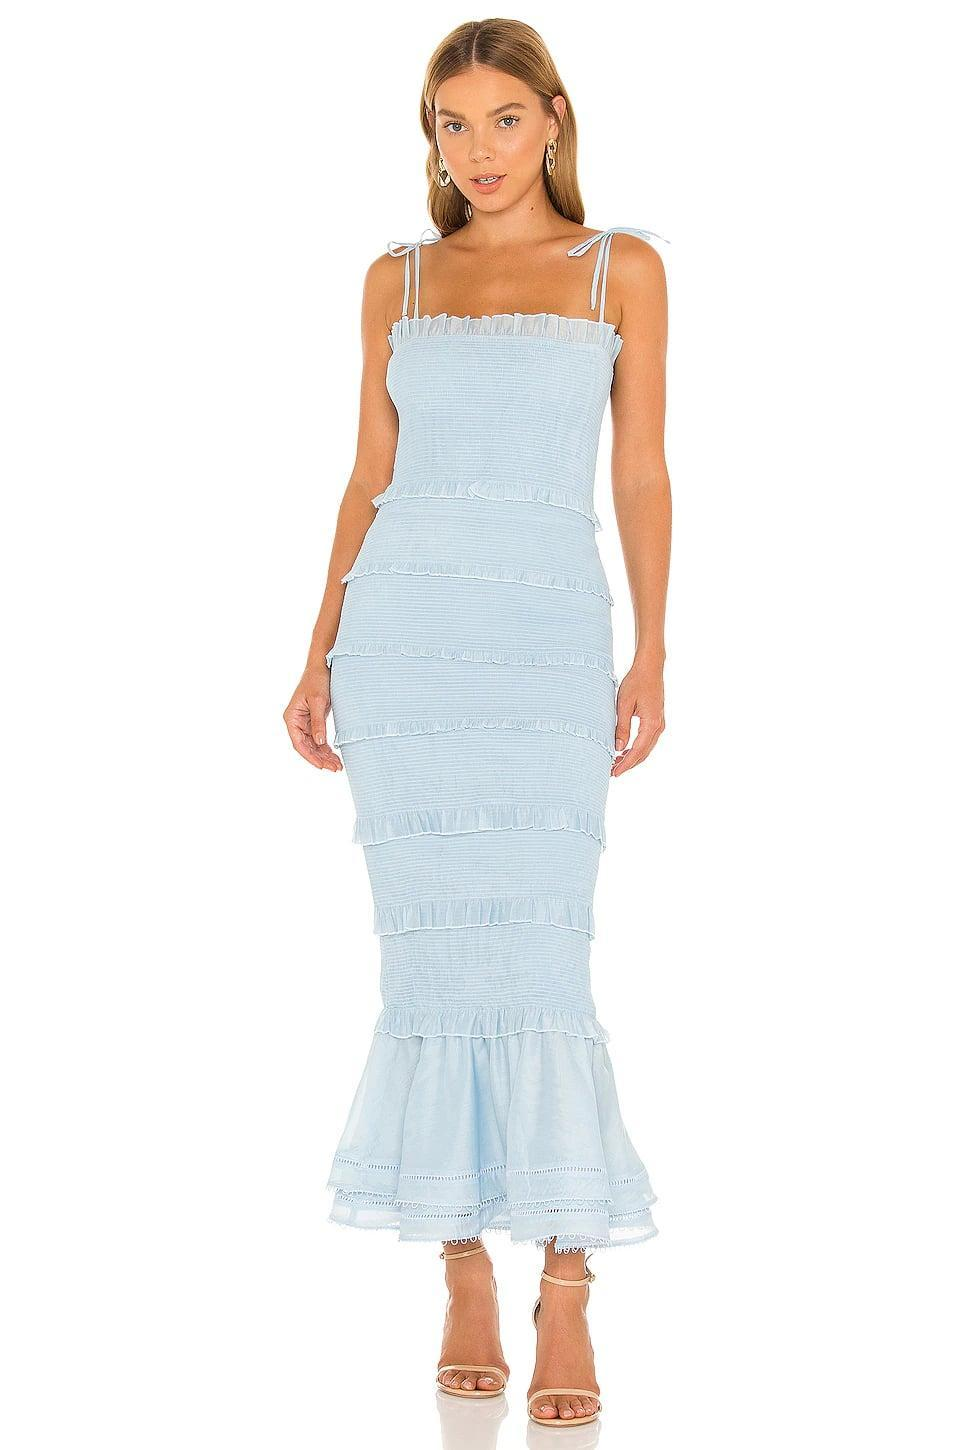 <p>This <span>V. Chapman Geranium Dress</span> ($385) is sweet and sexy at the same time. We like the little ruffles and the baby blue hue.</p>